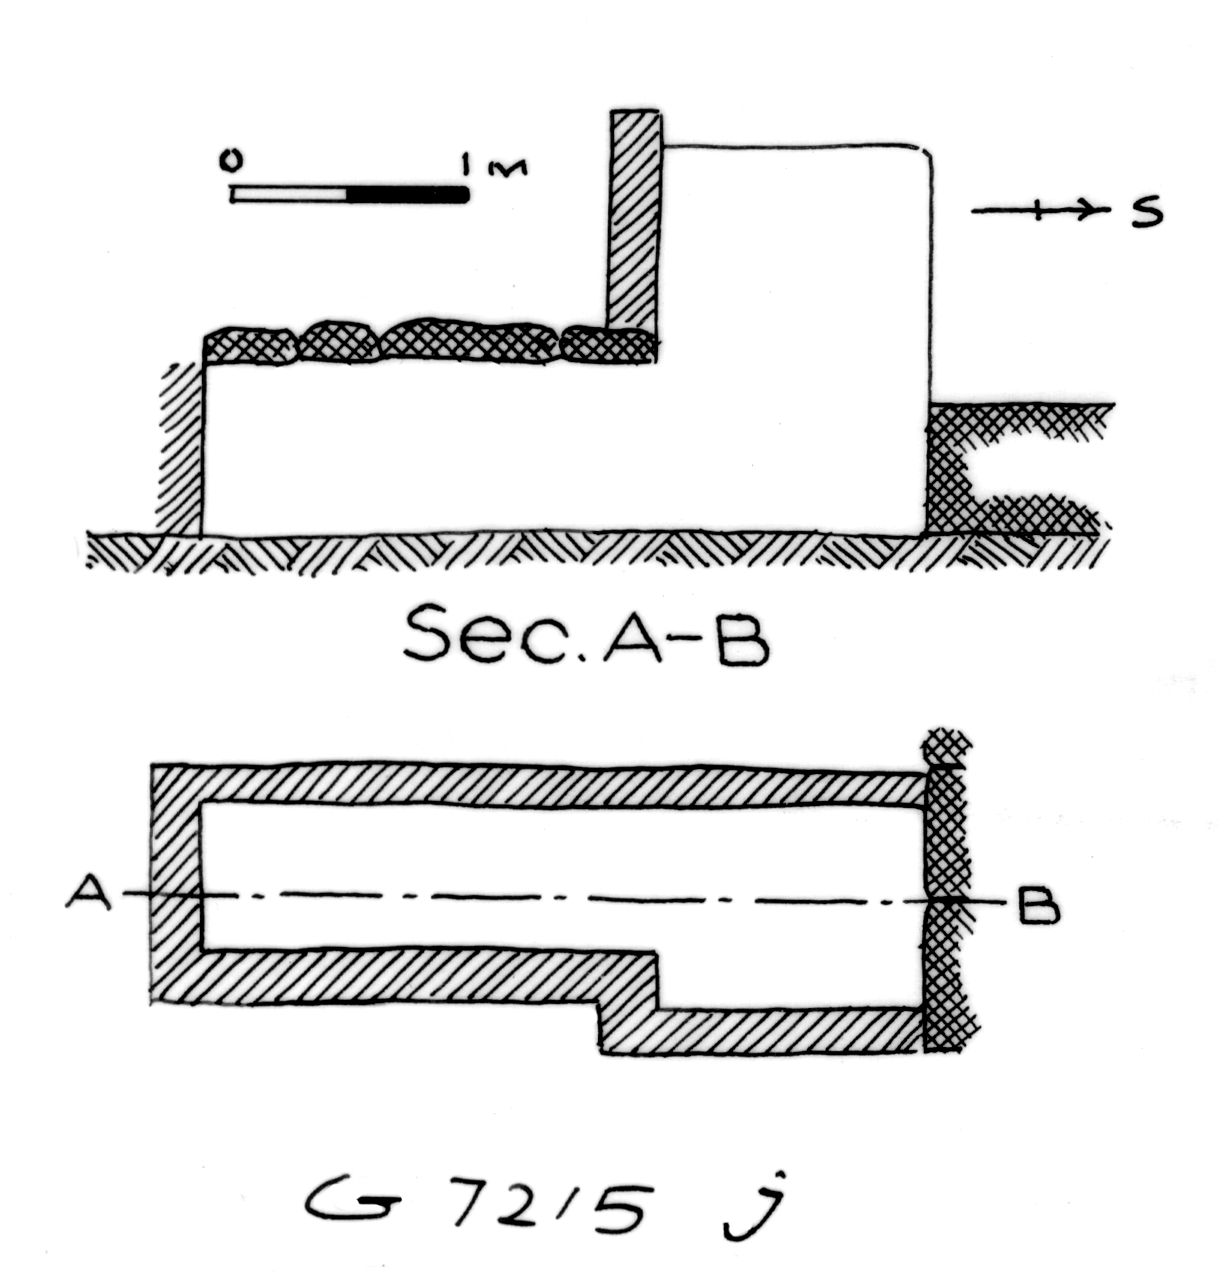 Maps and plans: G 7215, Shaft J